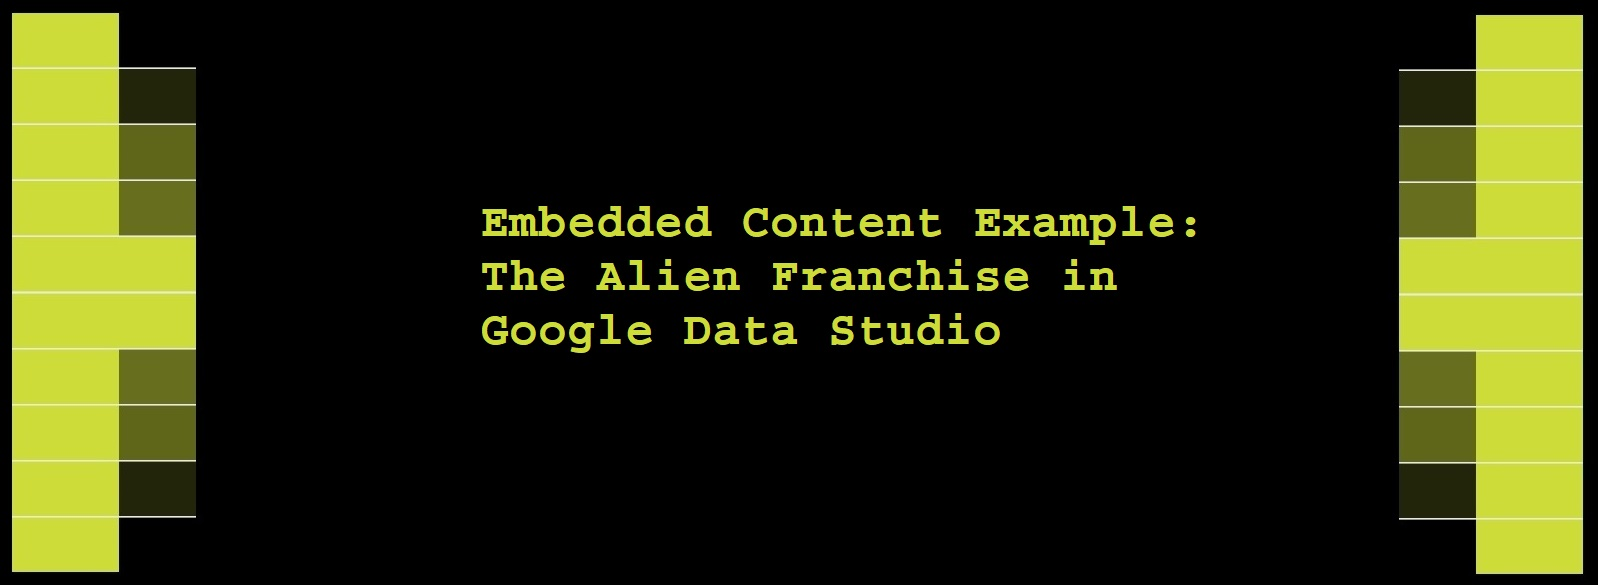 The Alien Franchise in Google Data Studio